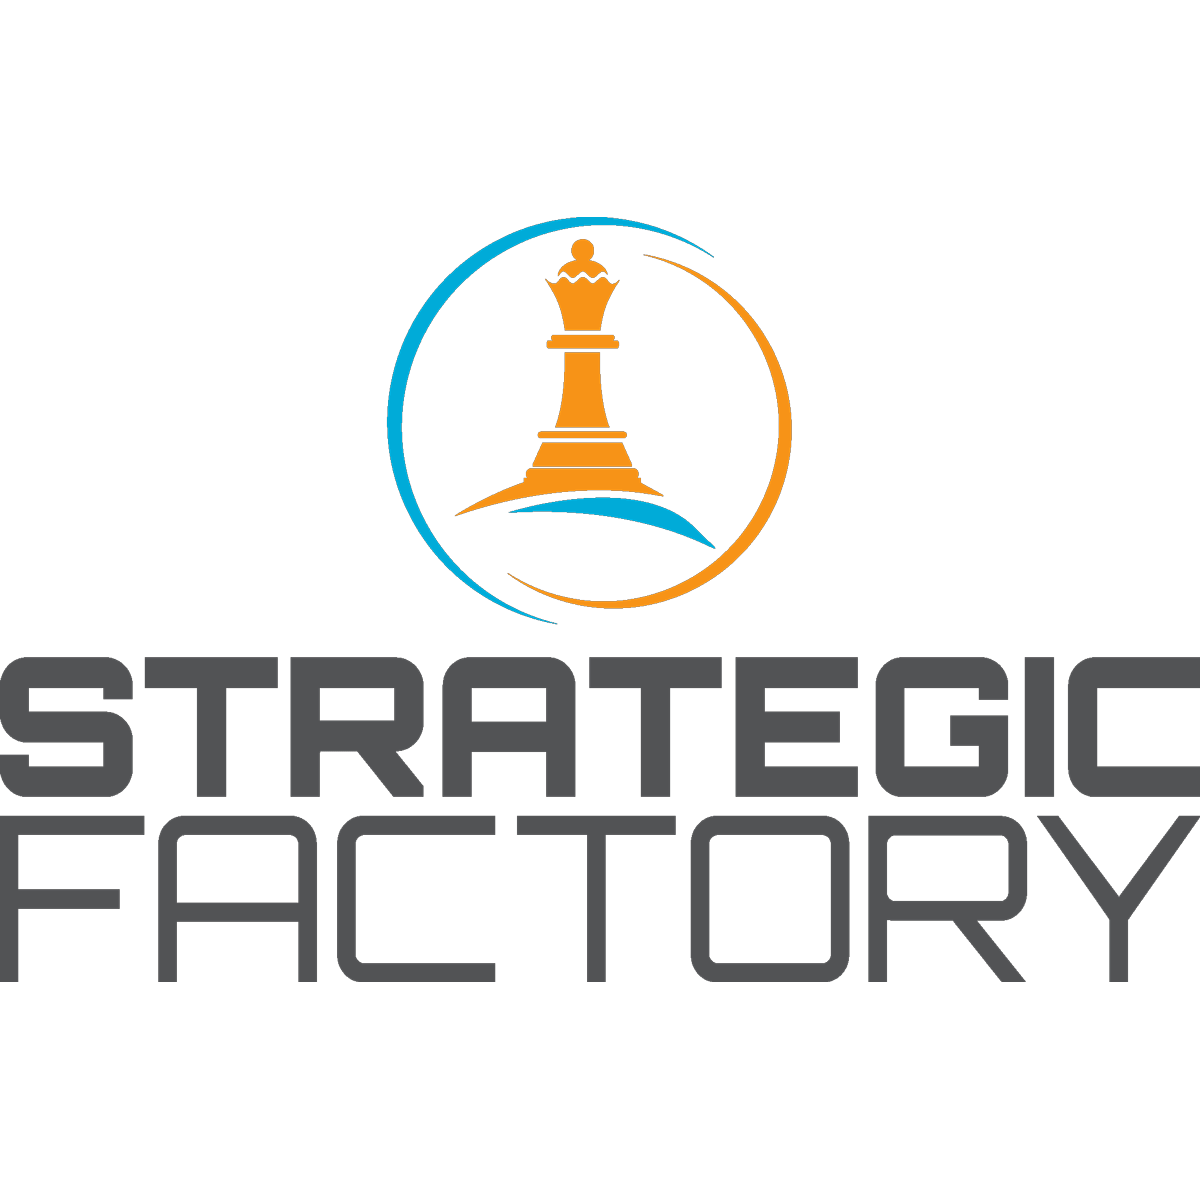 Strategic Factory, Owings Mills Maryland (MD